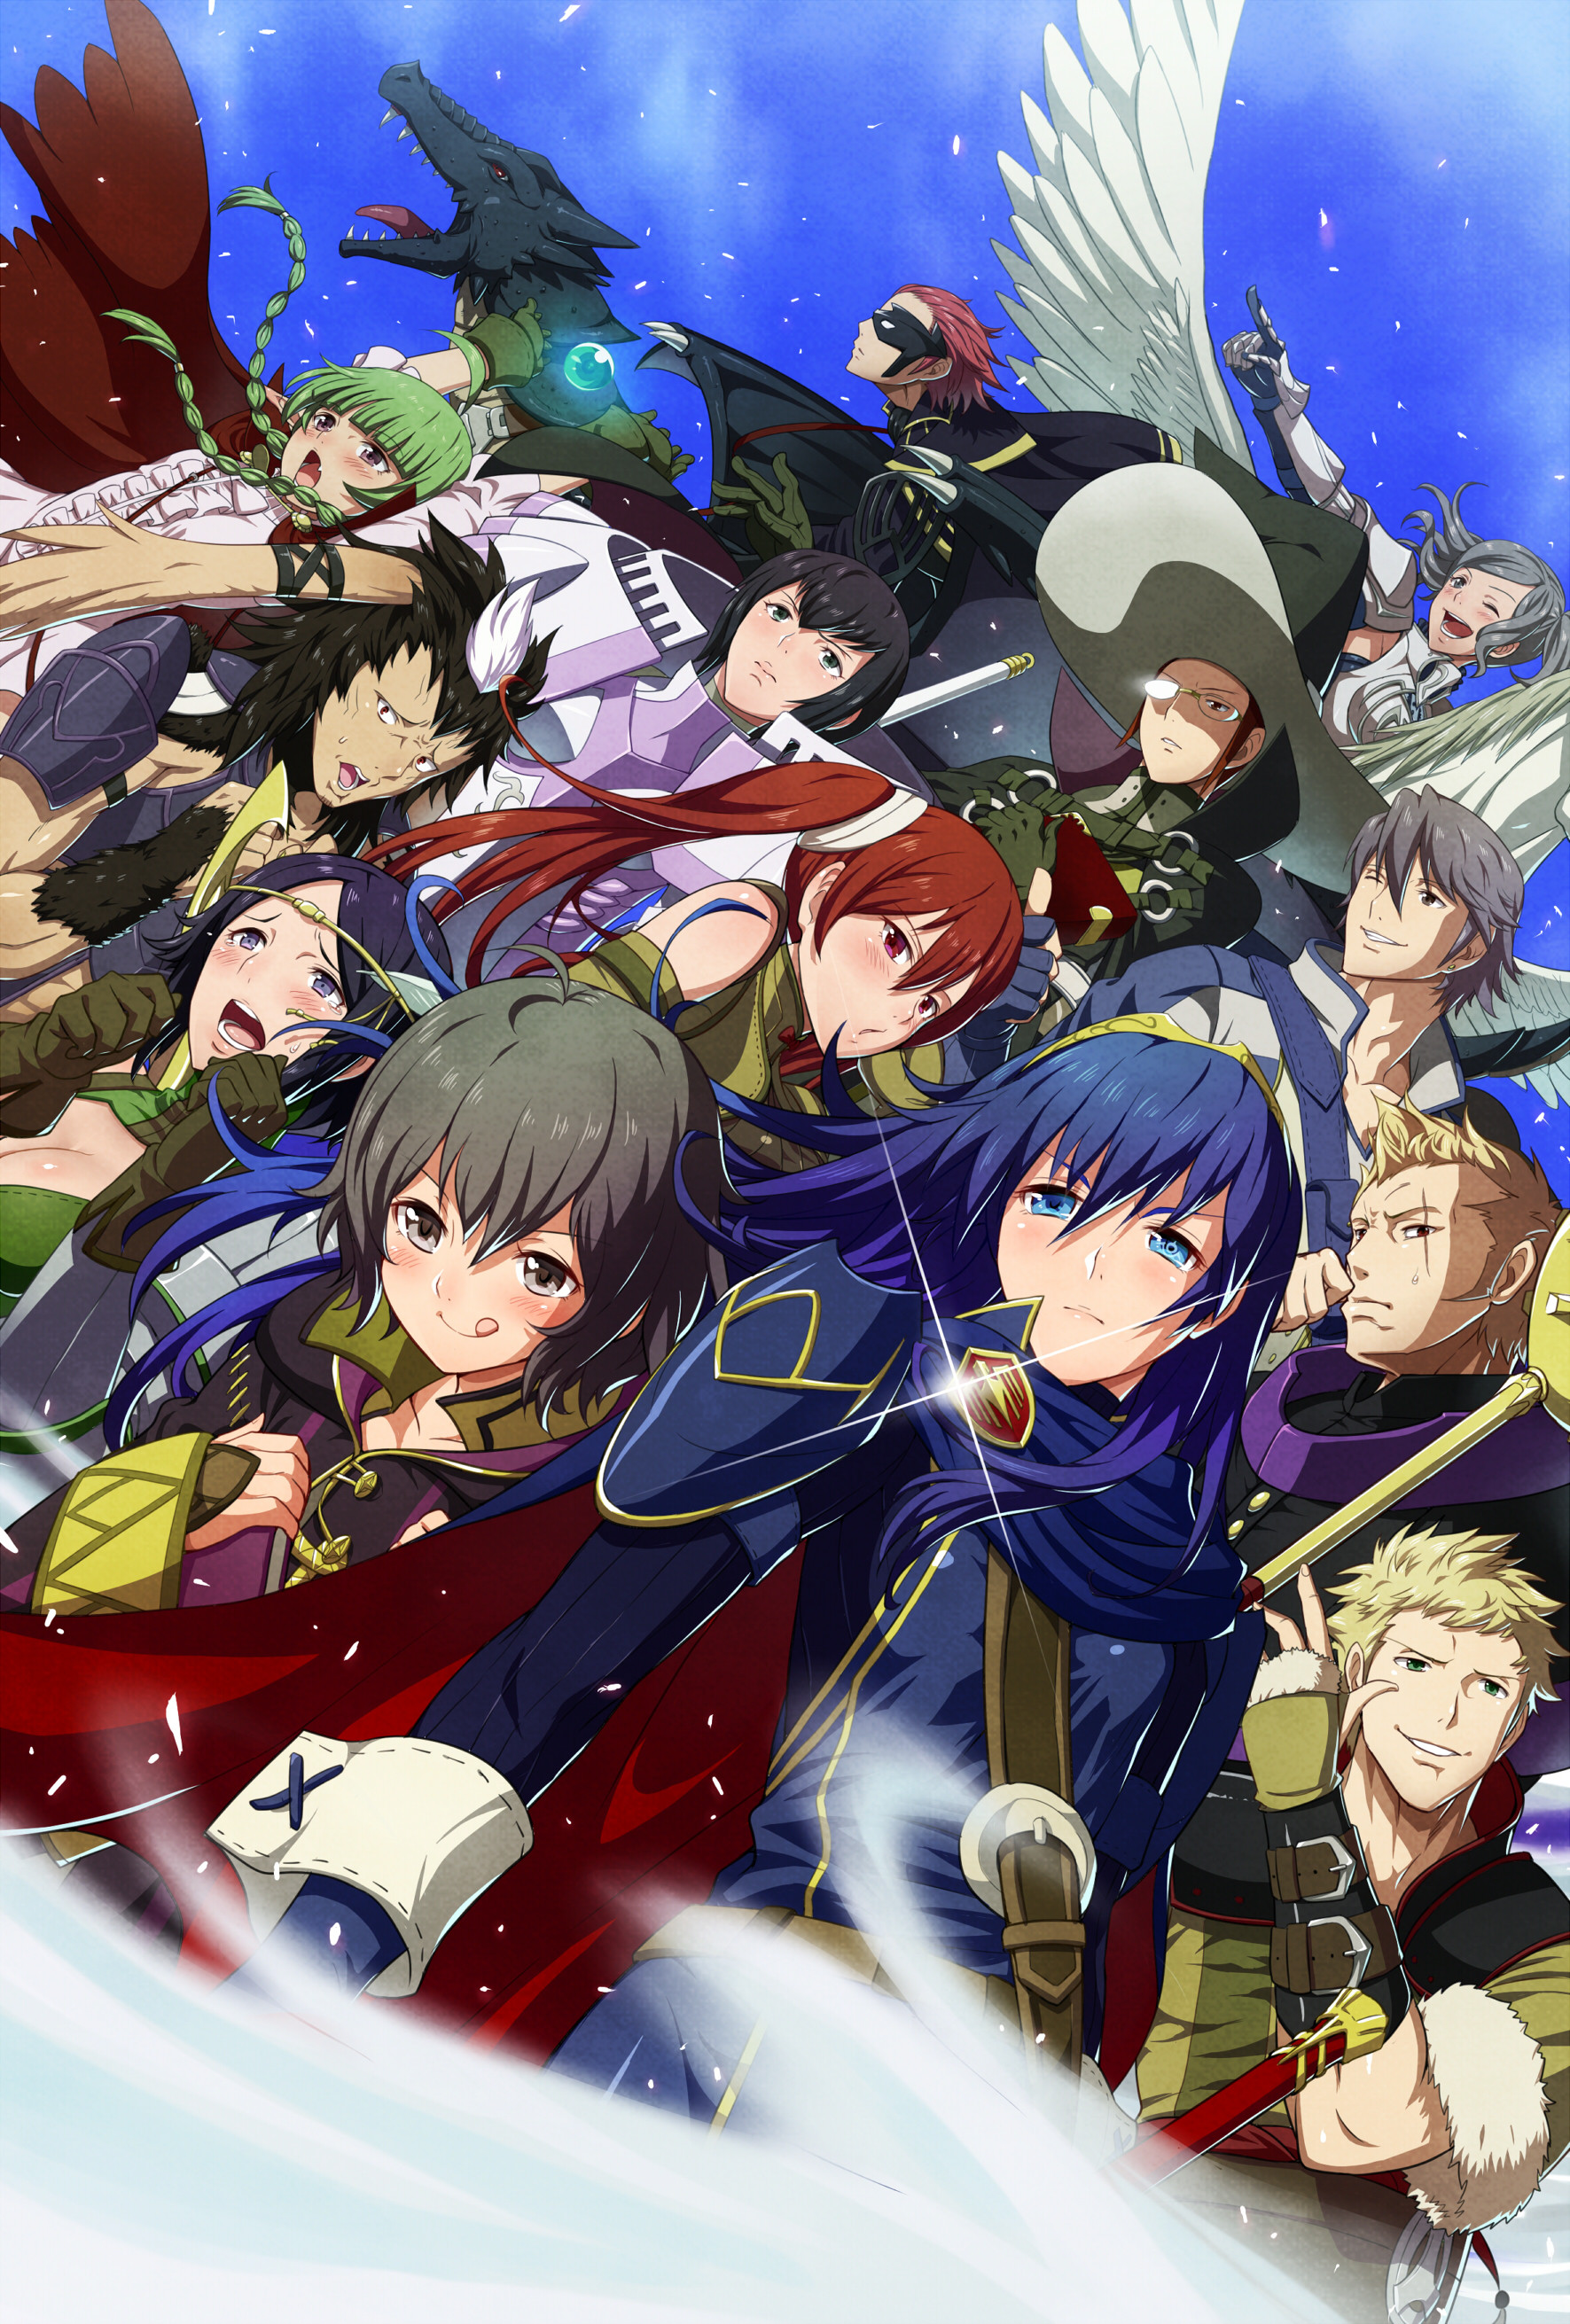 Fire Emblem: Awakening Children characters~ This looks so epic! I'm not